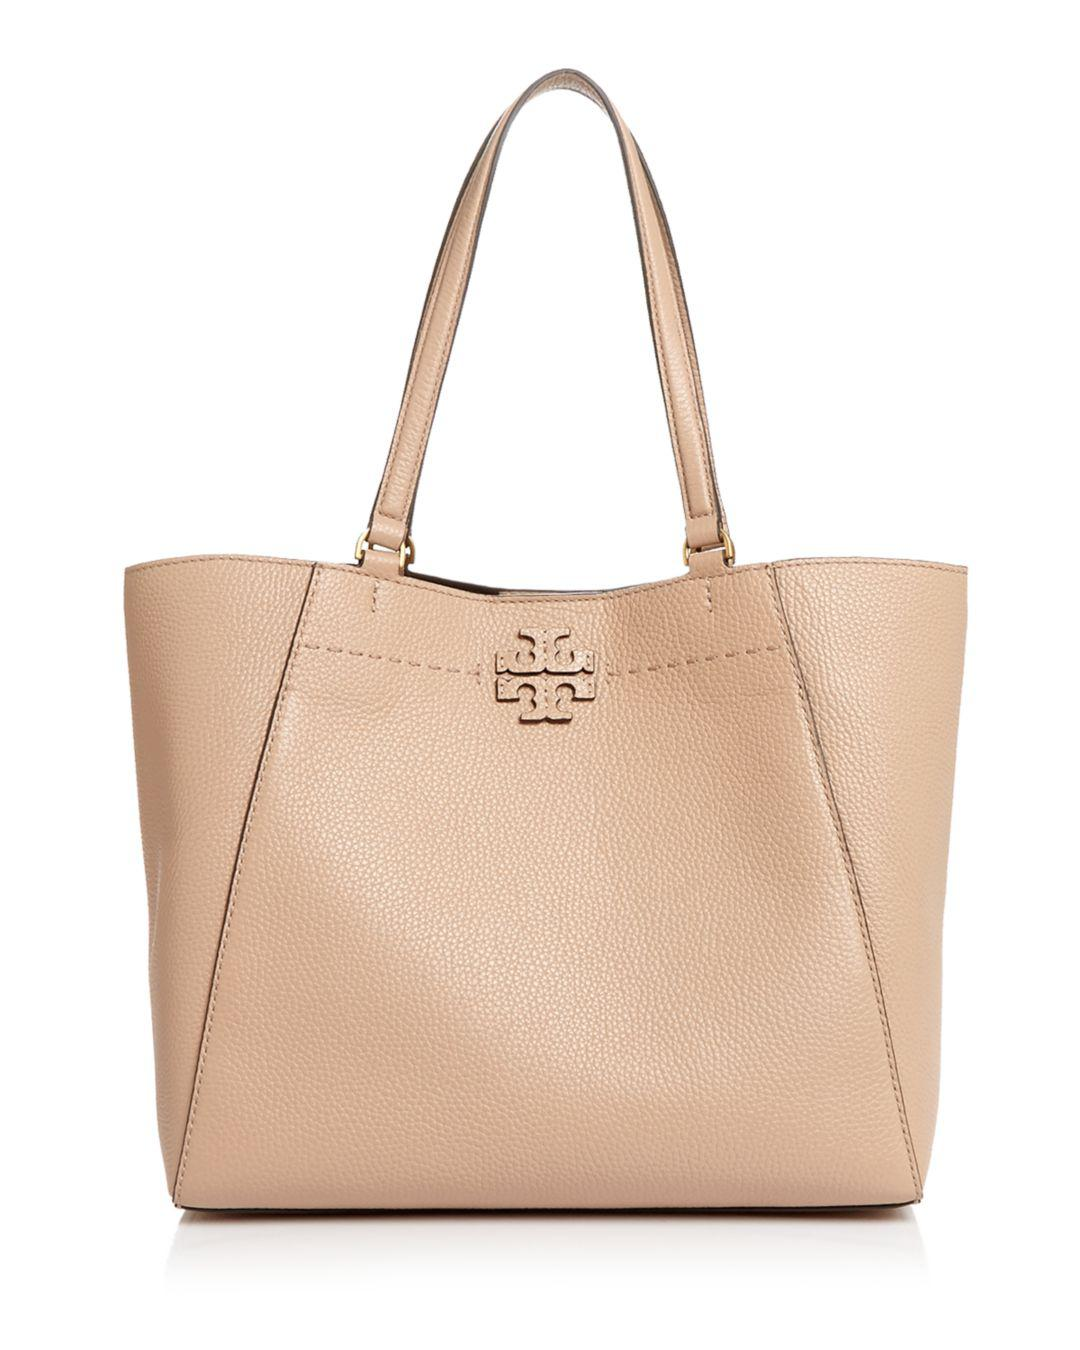 7e840763d3fb Lyst - Tory Burch Mcgraw Large Leather Carryall Tote in Natural